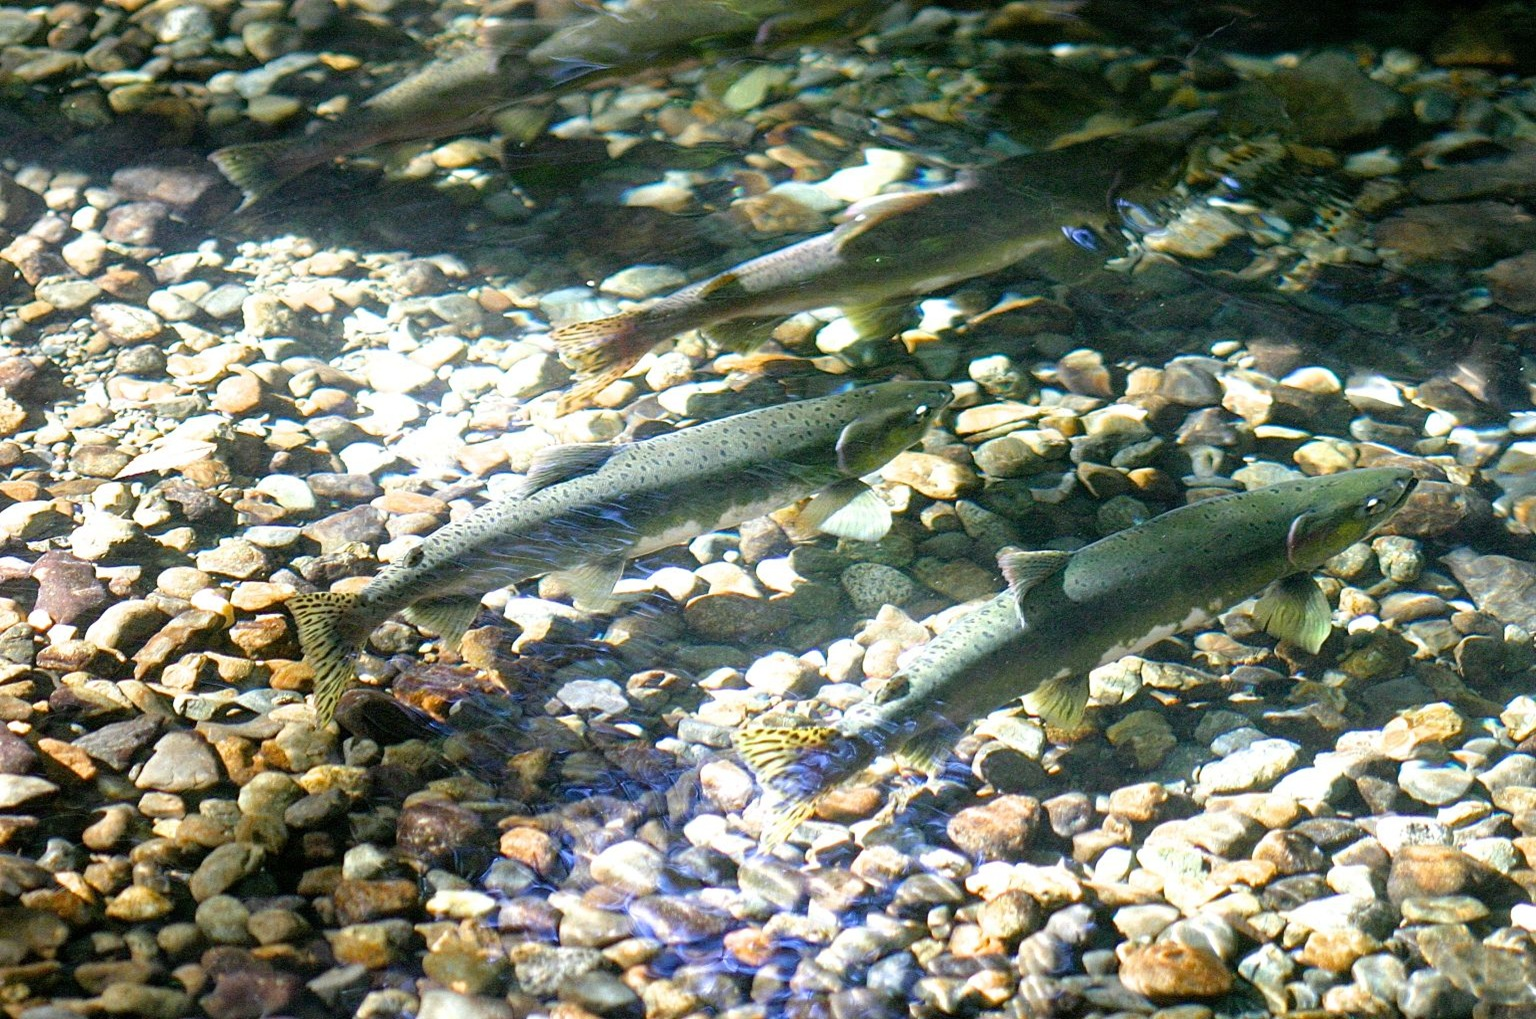 Pink Salmon spawning grounds Sept 24 Oyster River - charles brandt